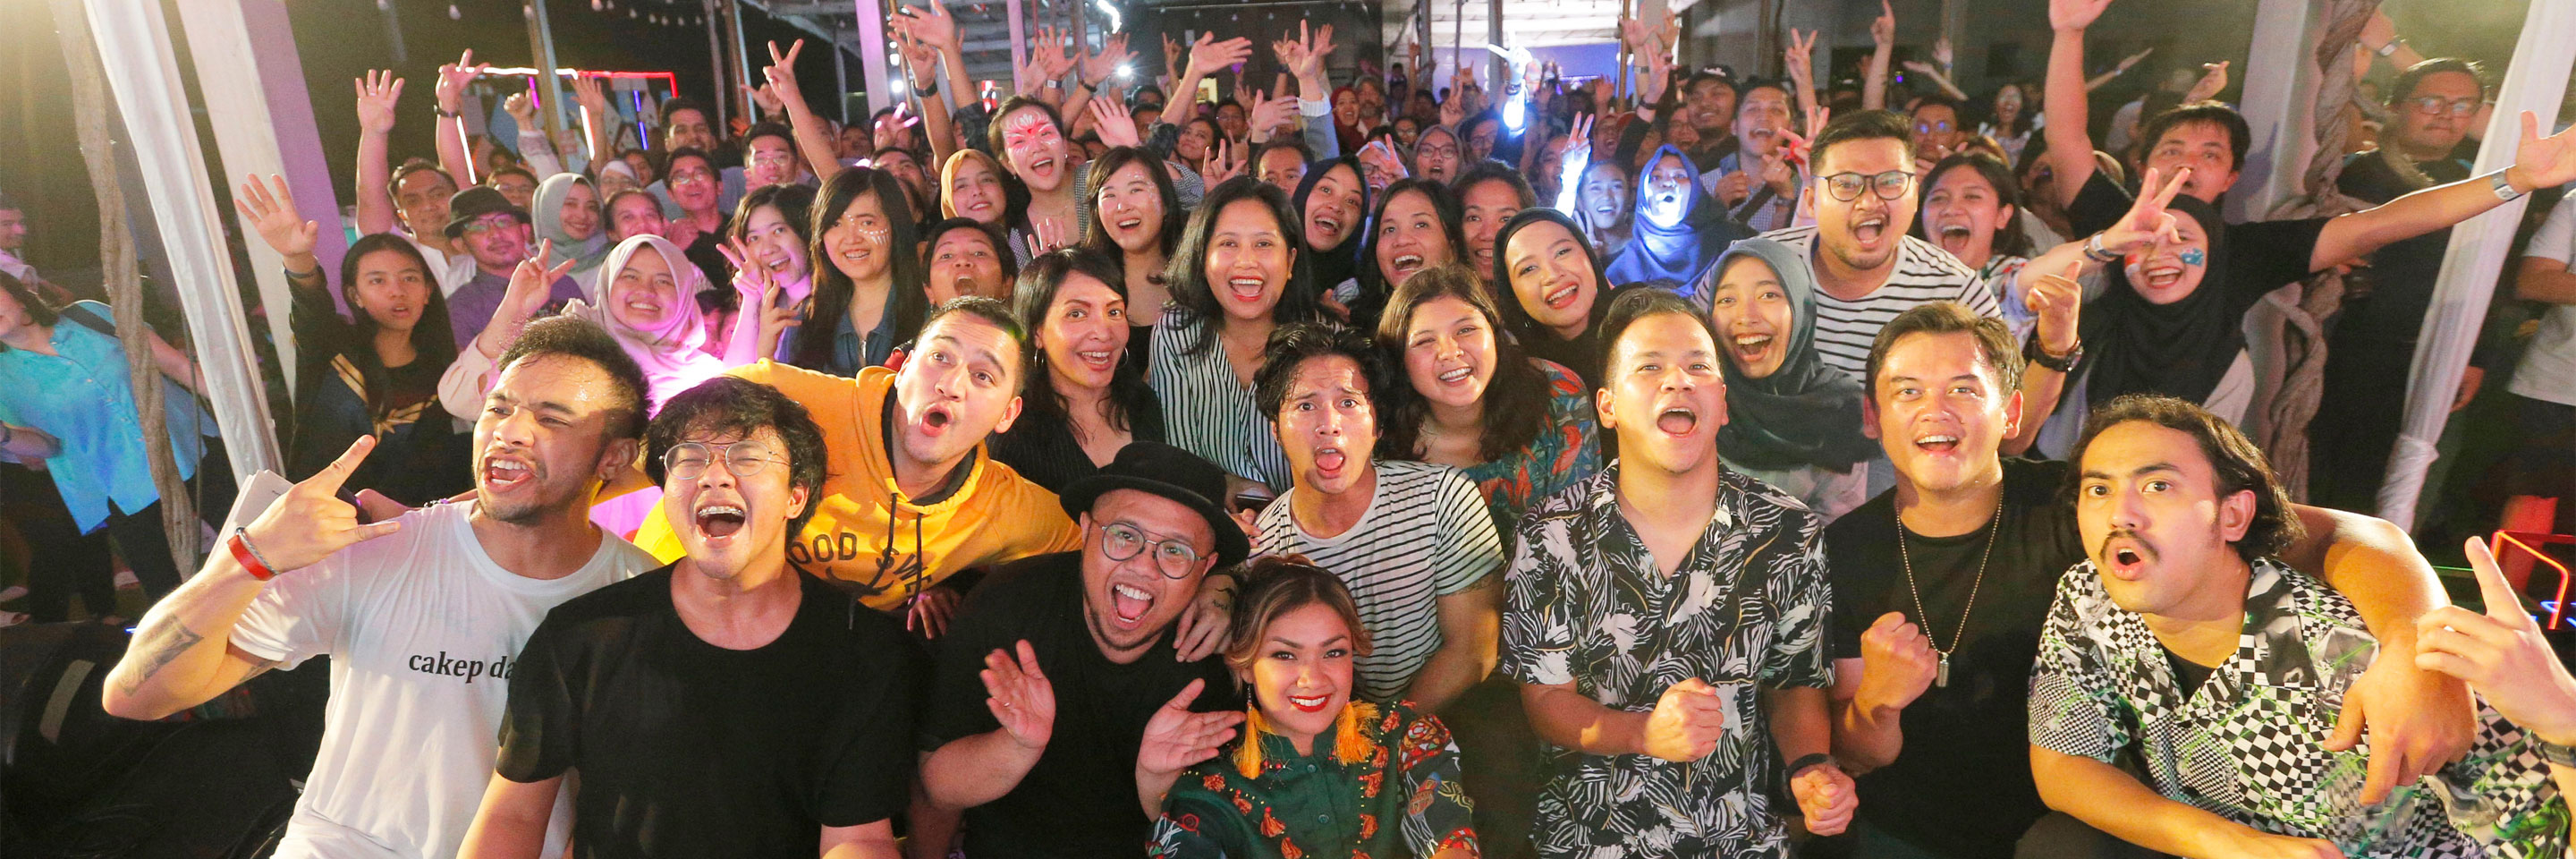 Over 500 Australian alumni are entertained by the talents of an Australian eclectic singer, Indonesia's famous bands and a special stand-up comedy at the Gig on the Green 2019 in Jakarta.